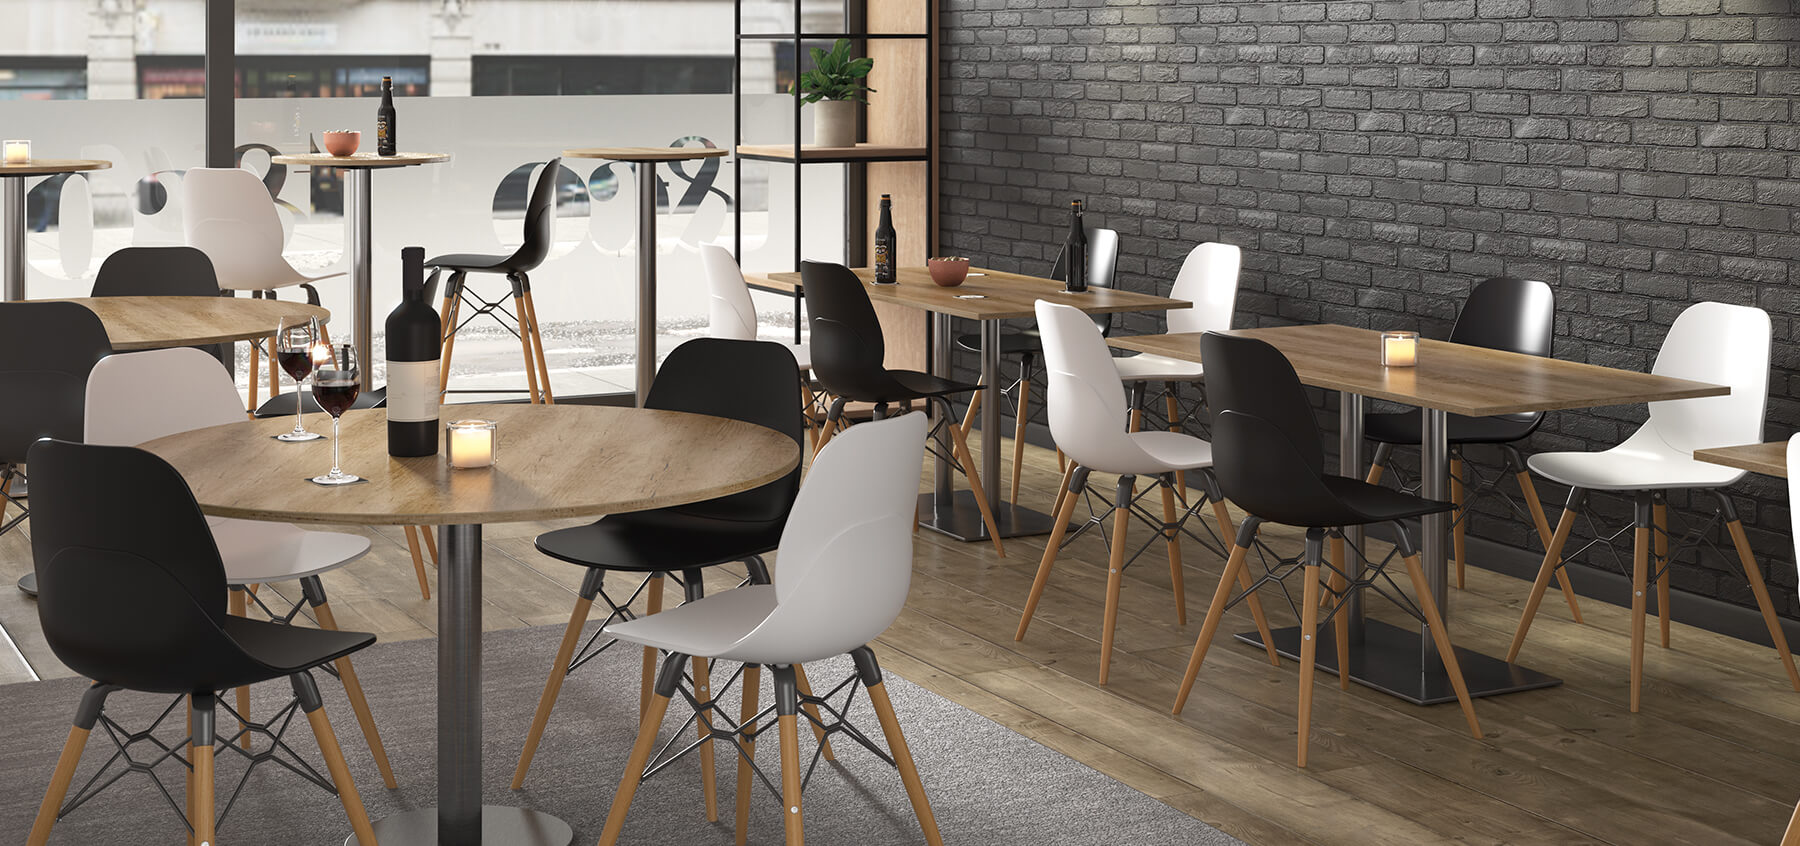 wholesale restaurant, bar and cafe furniture